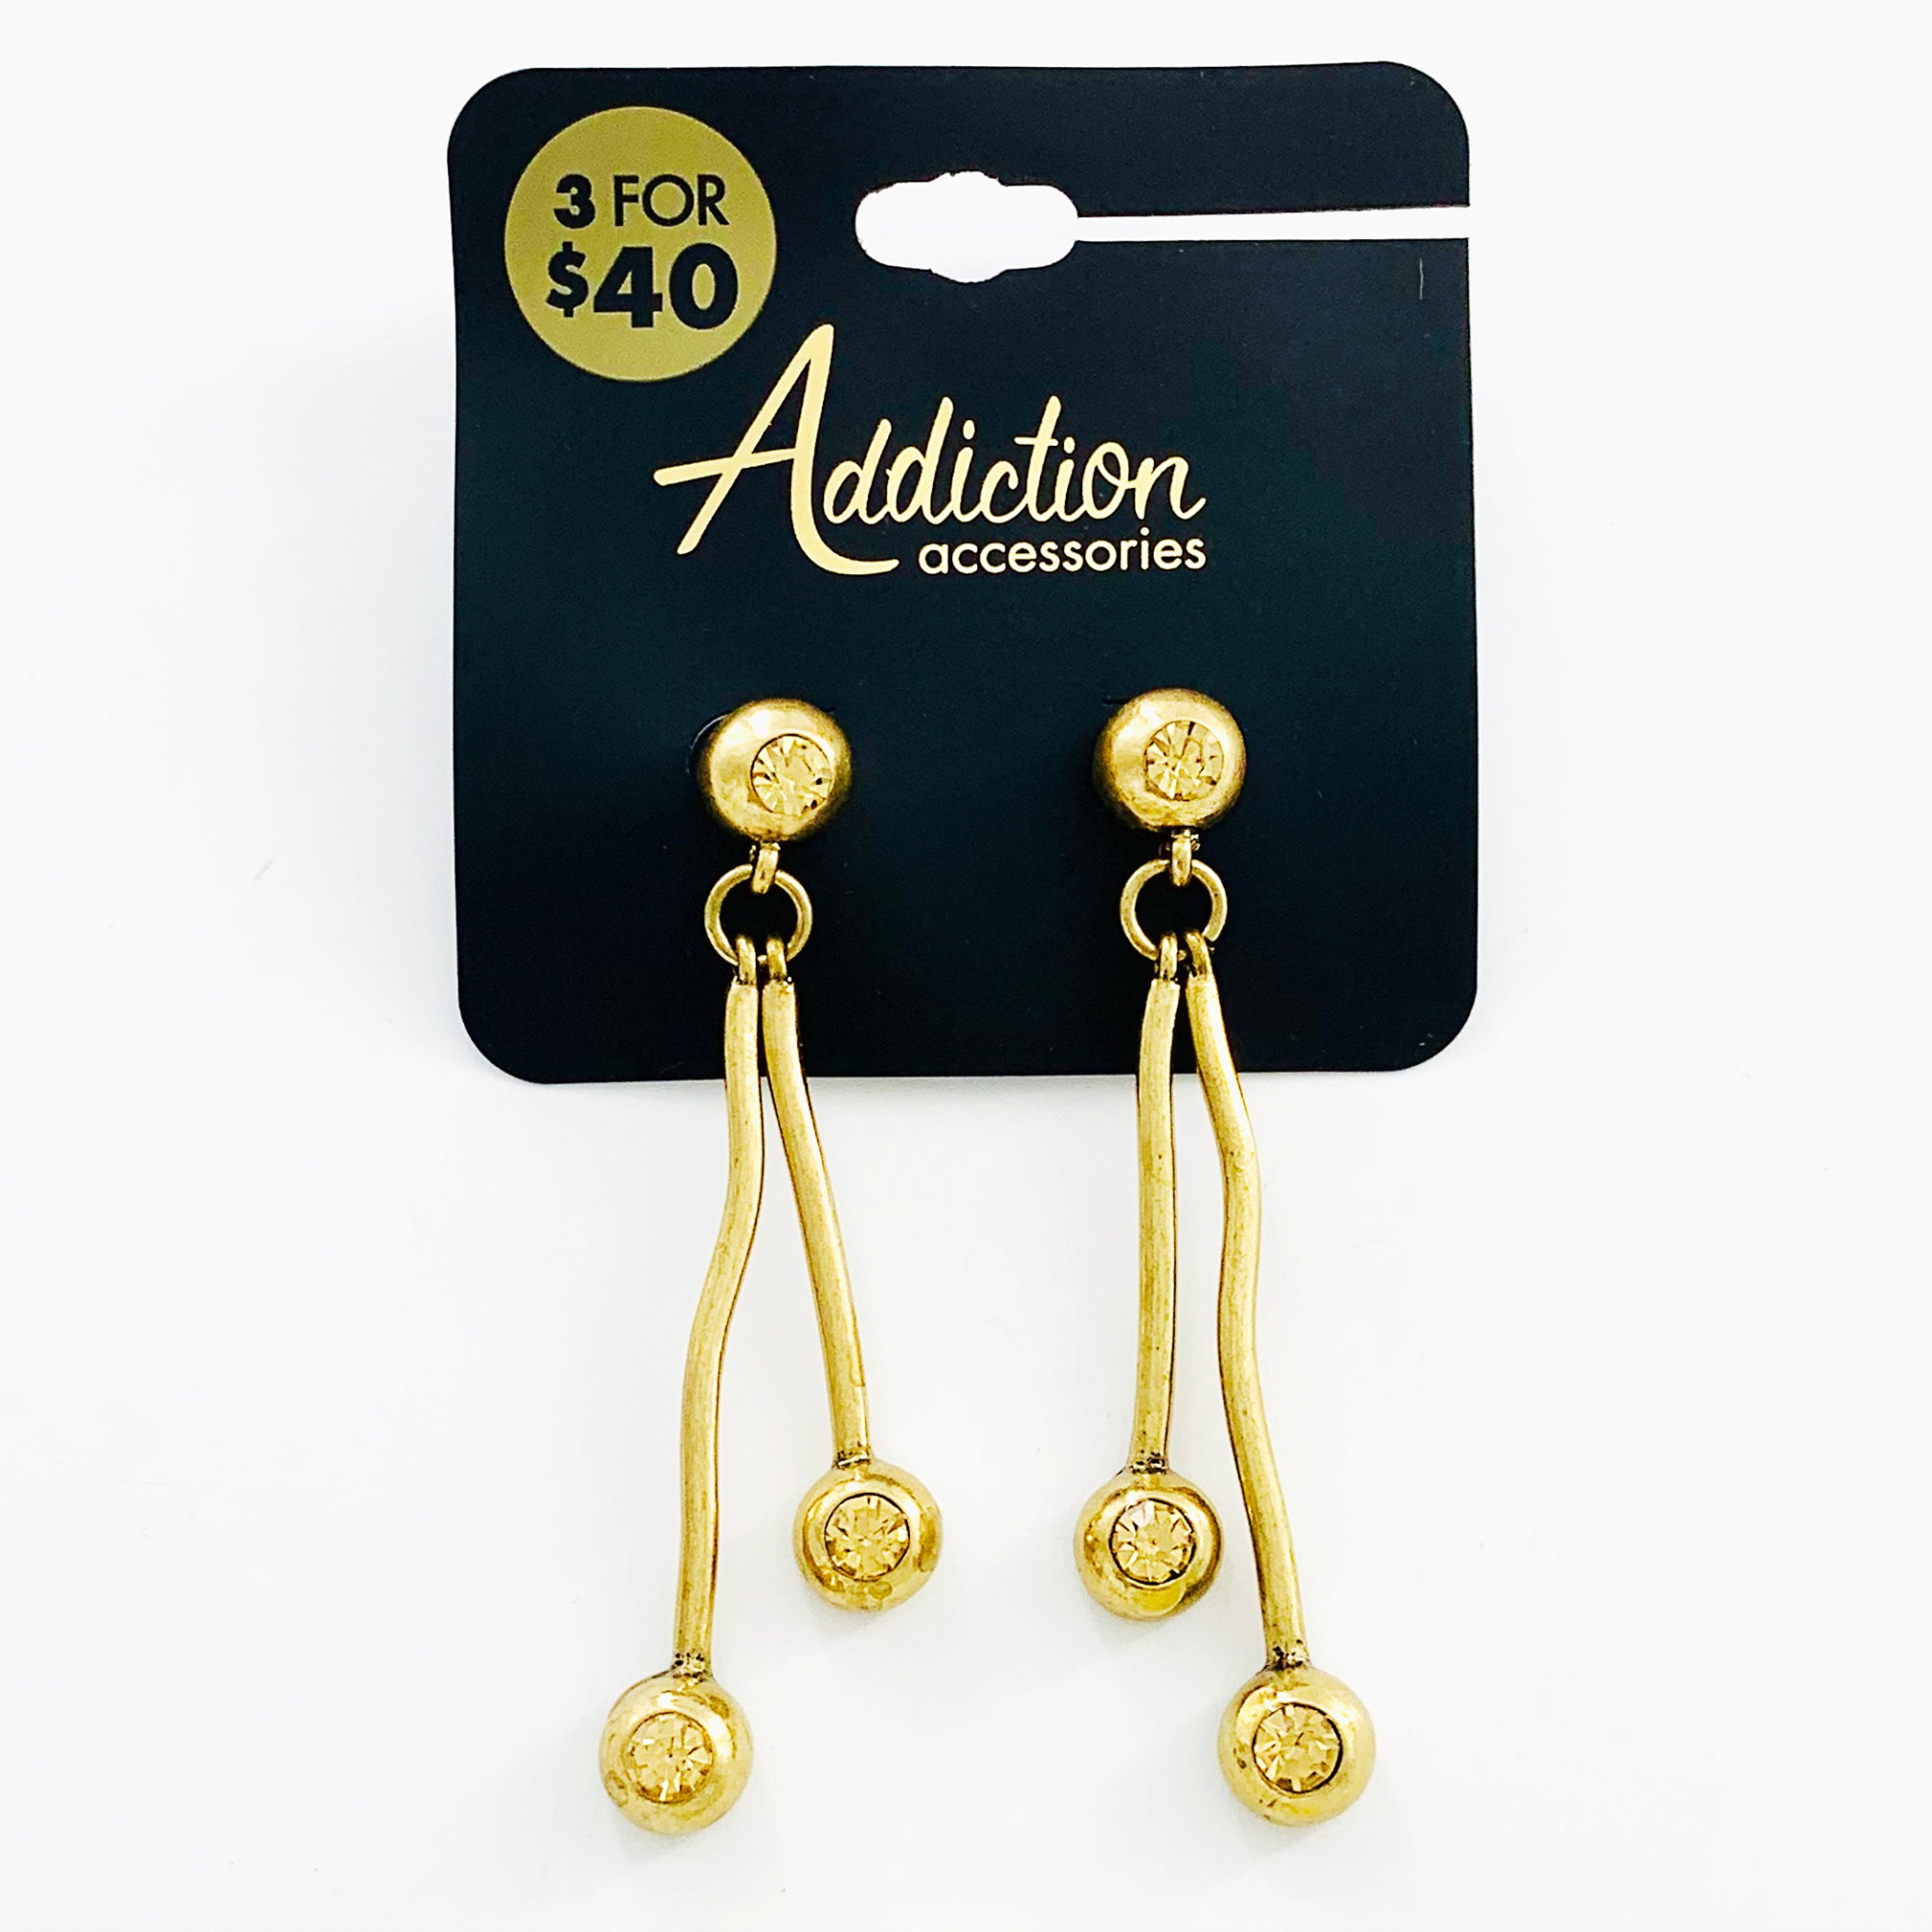 Gold earrings with yellow diamante stones